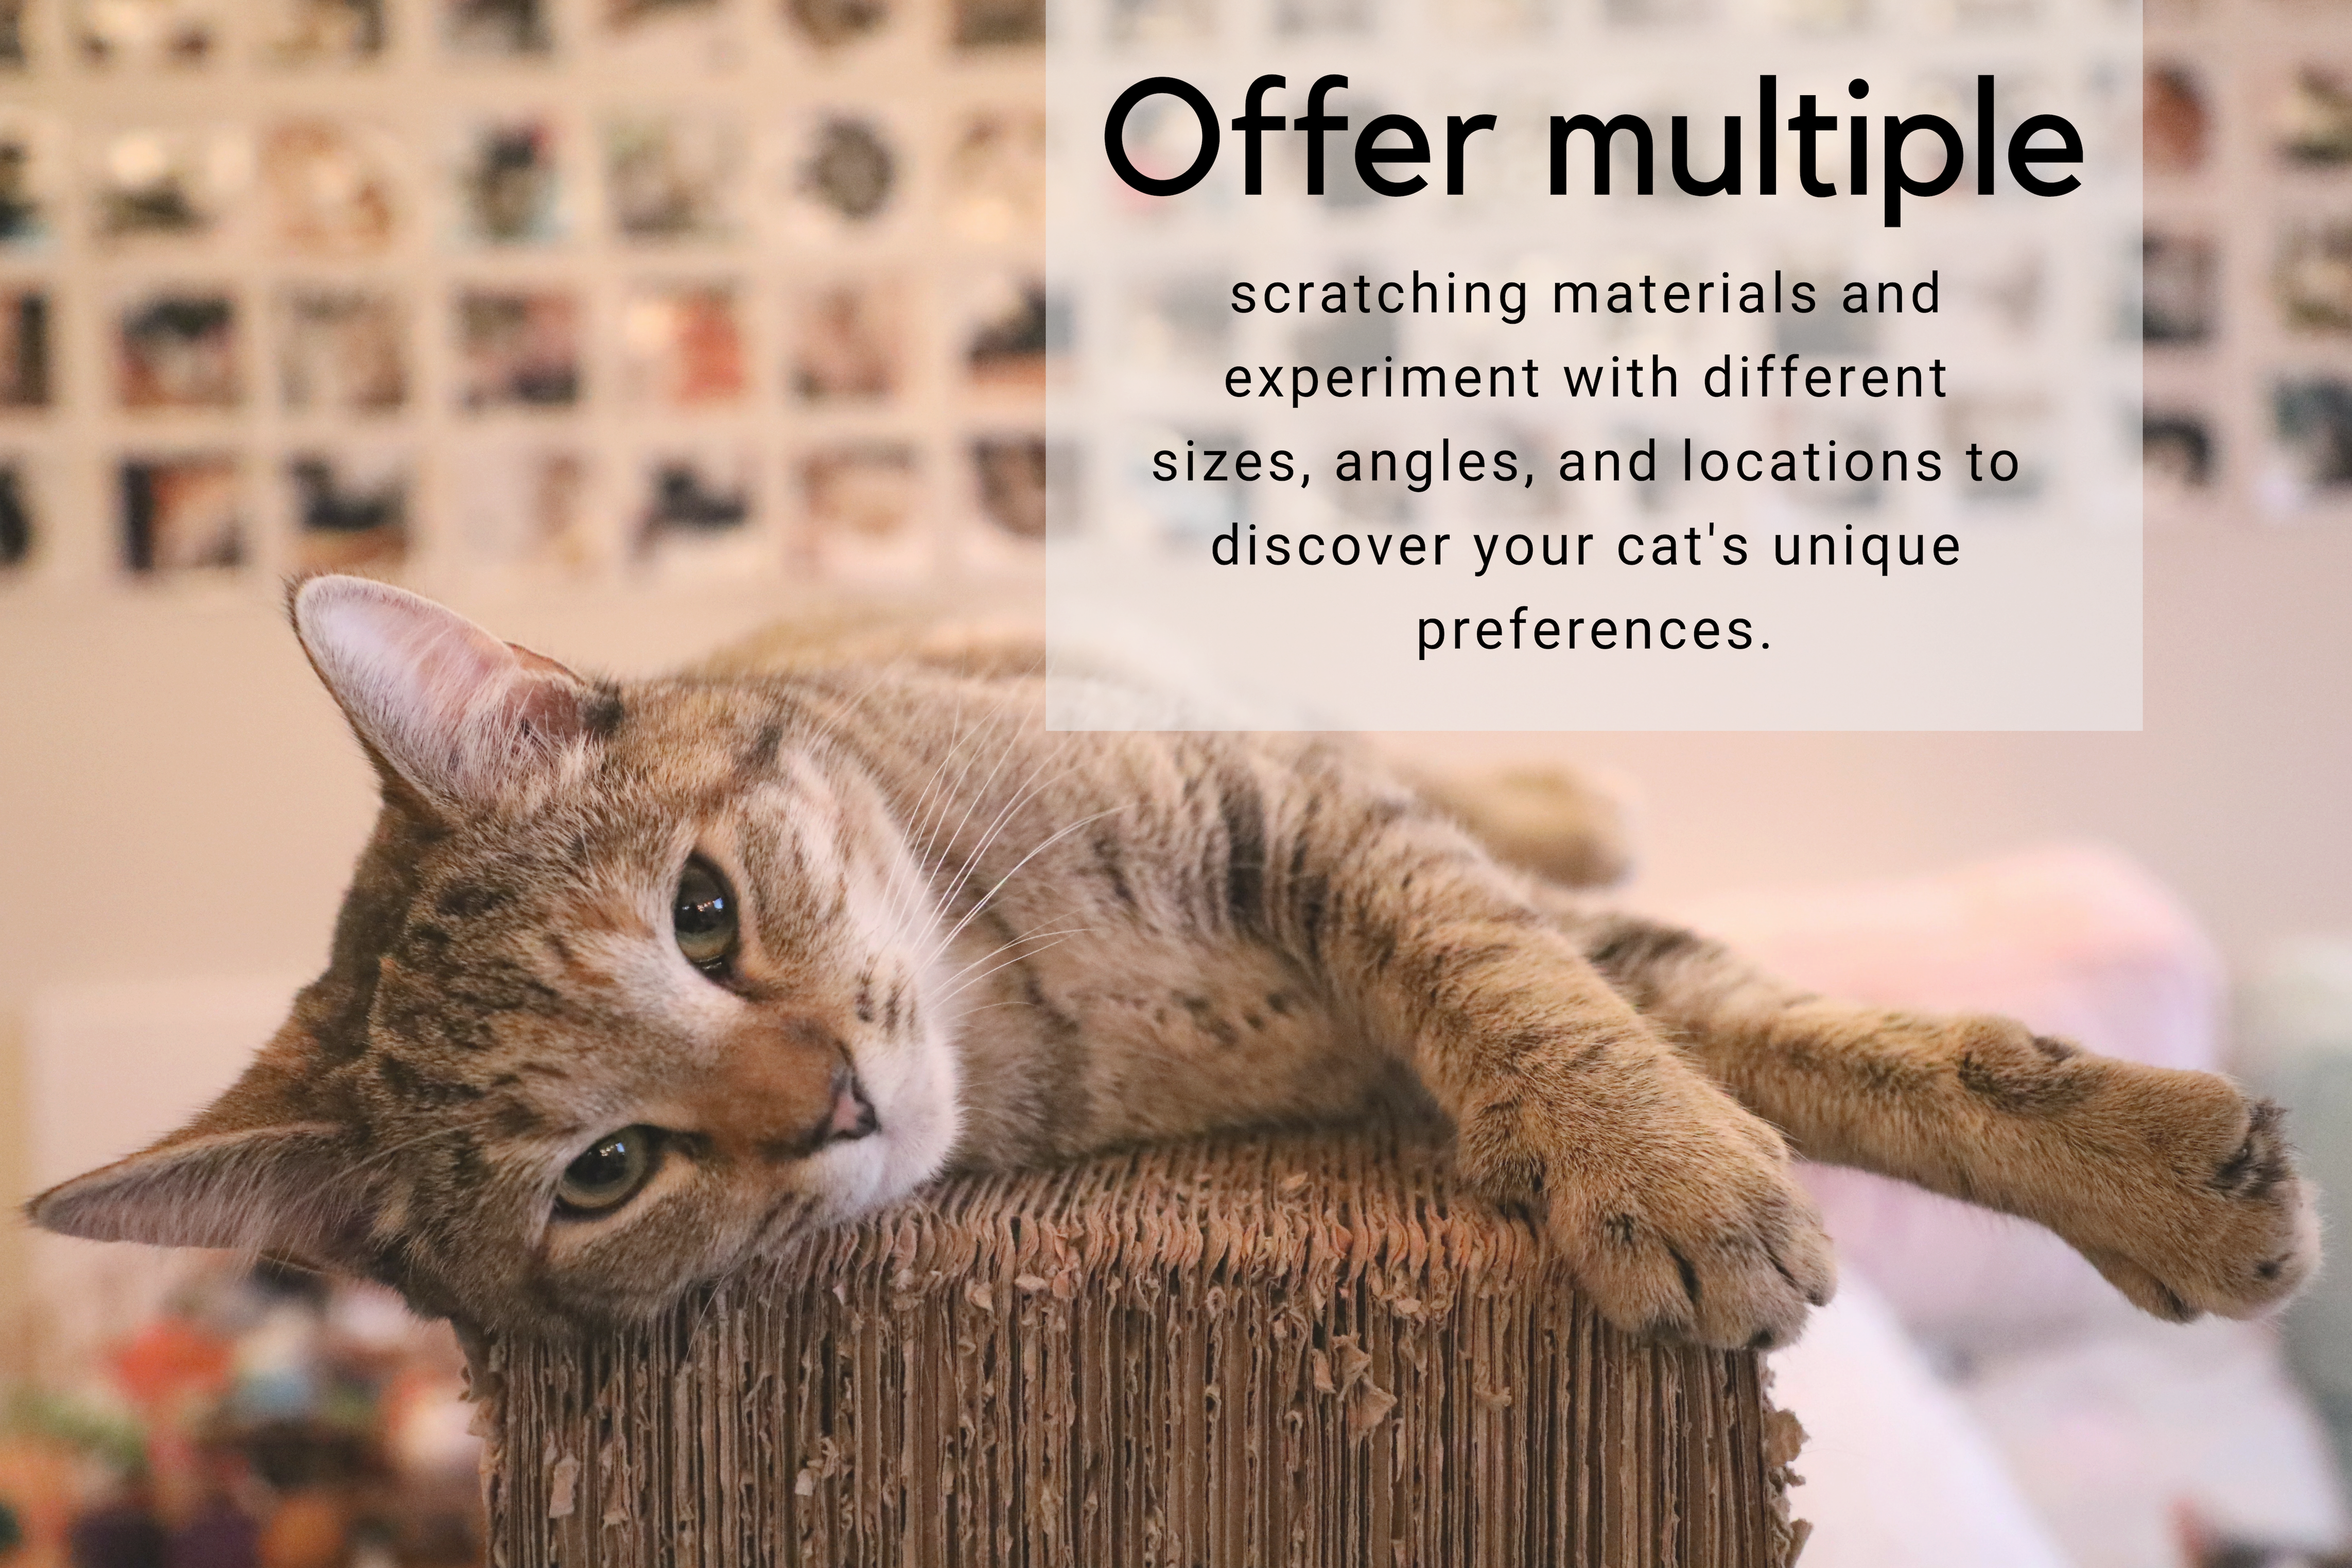 Offer multiple scratching materials and experiment with different sizes, angles, and locations to discover your cat's unique preferences.